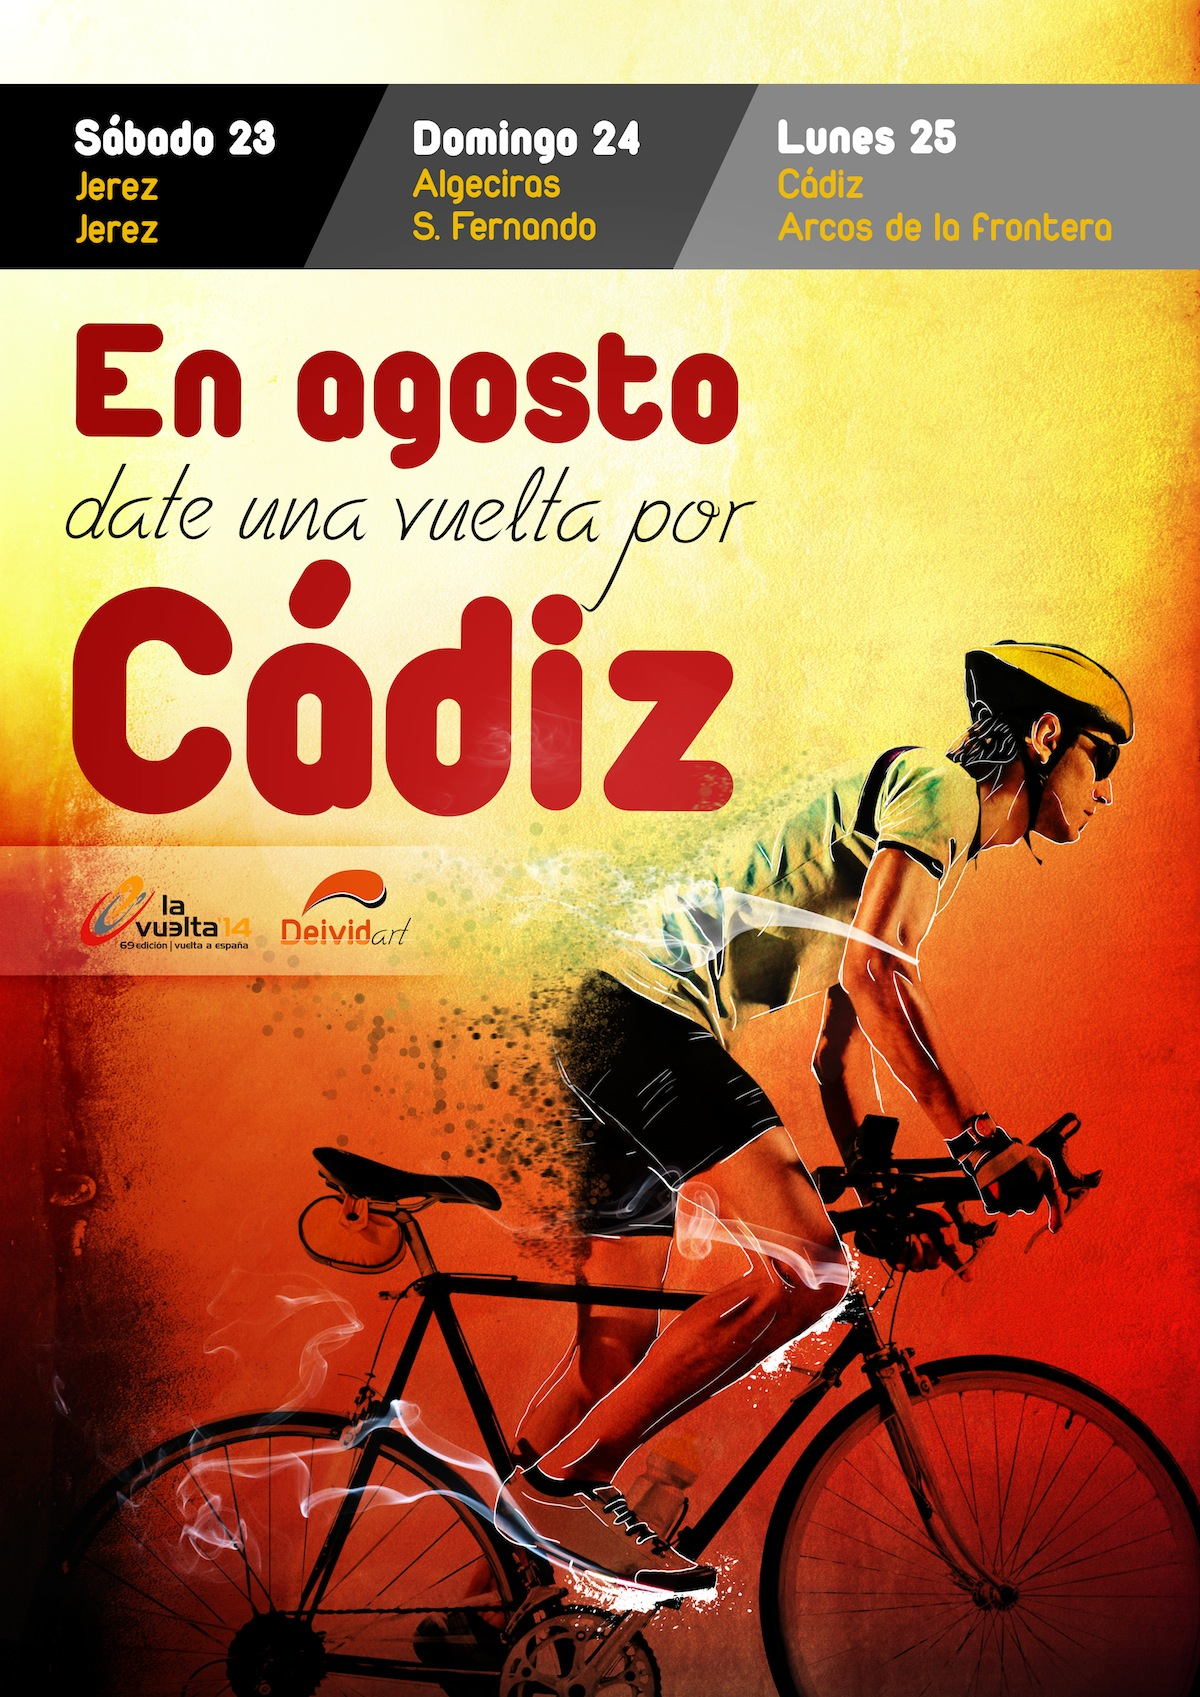 Tour of Spain 2014 Poster